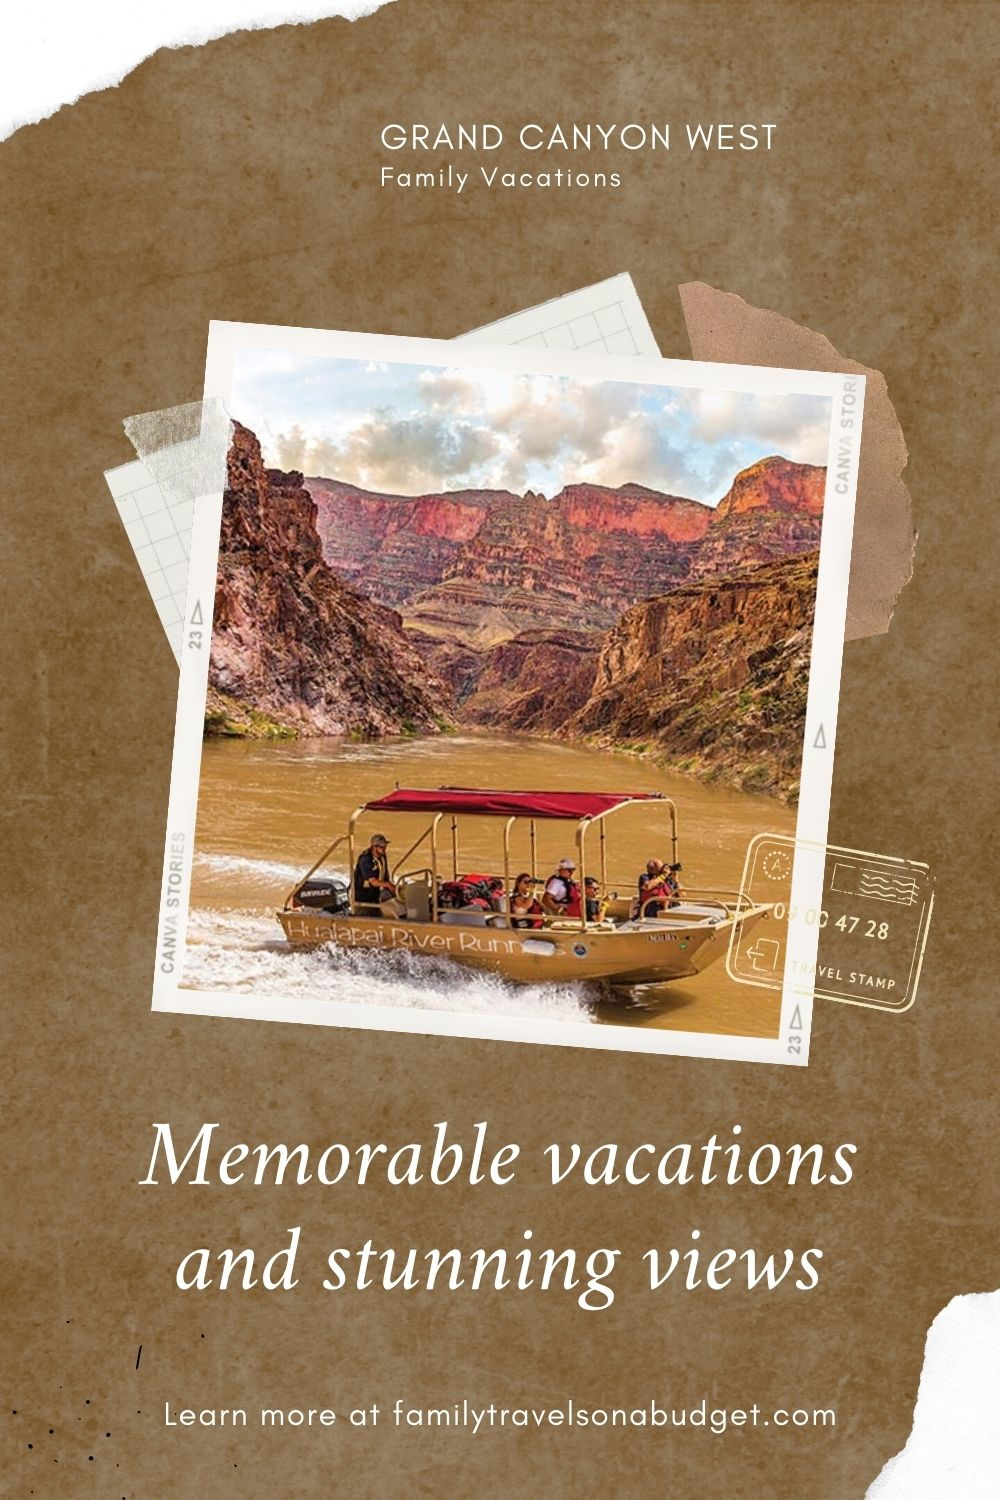 Grand Canyon vacations for families should include time at Grand Canyon West. Family friendly adventure, Native American culture and a break from the typical crowds at the national park make this a place to unwind and reconnect with family and with the earth. Sunset views, stars overhead, and s'mores are just a few of the bonuses you'll experience. Read our guide to learn more. Includes planning links. via @karendawkins